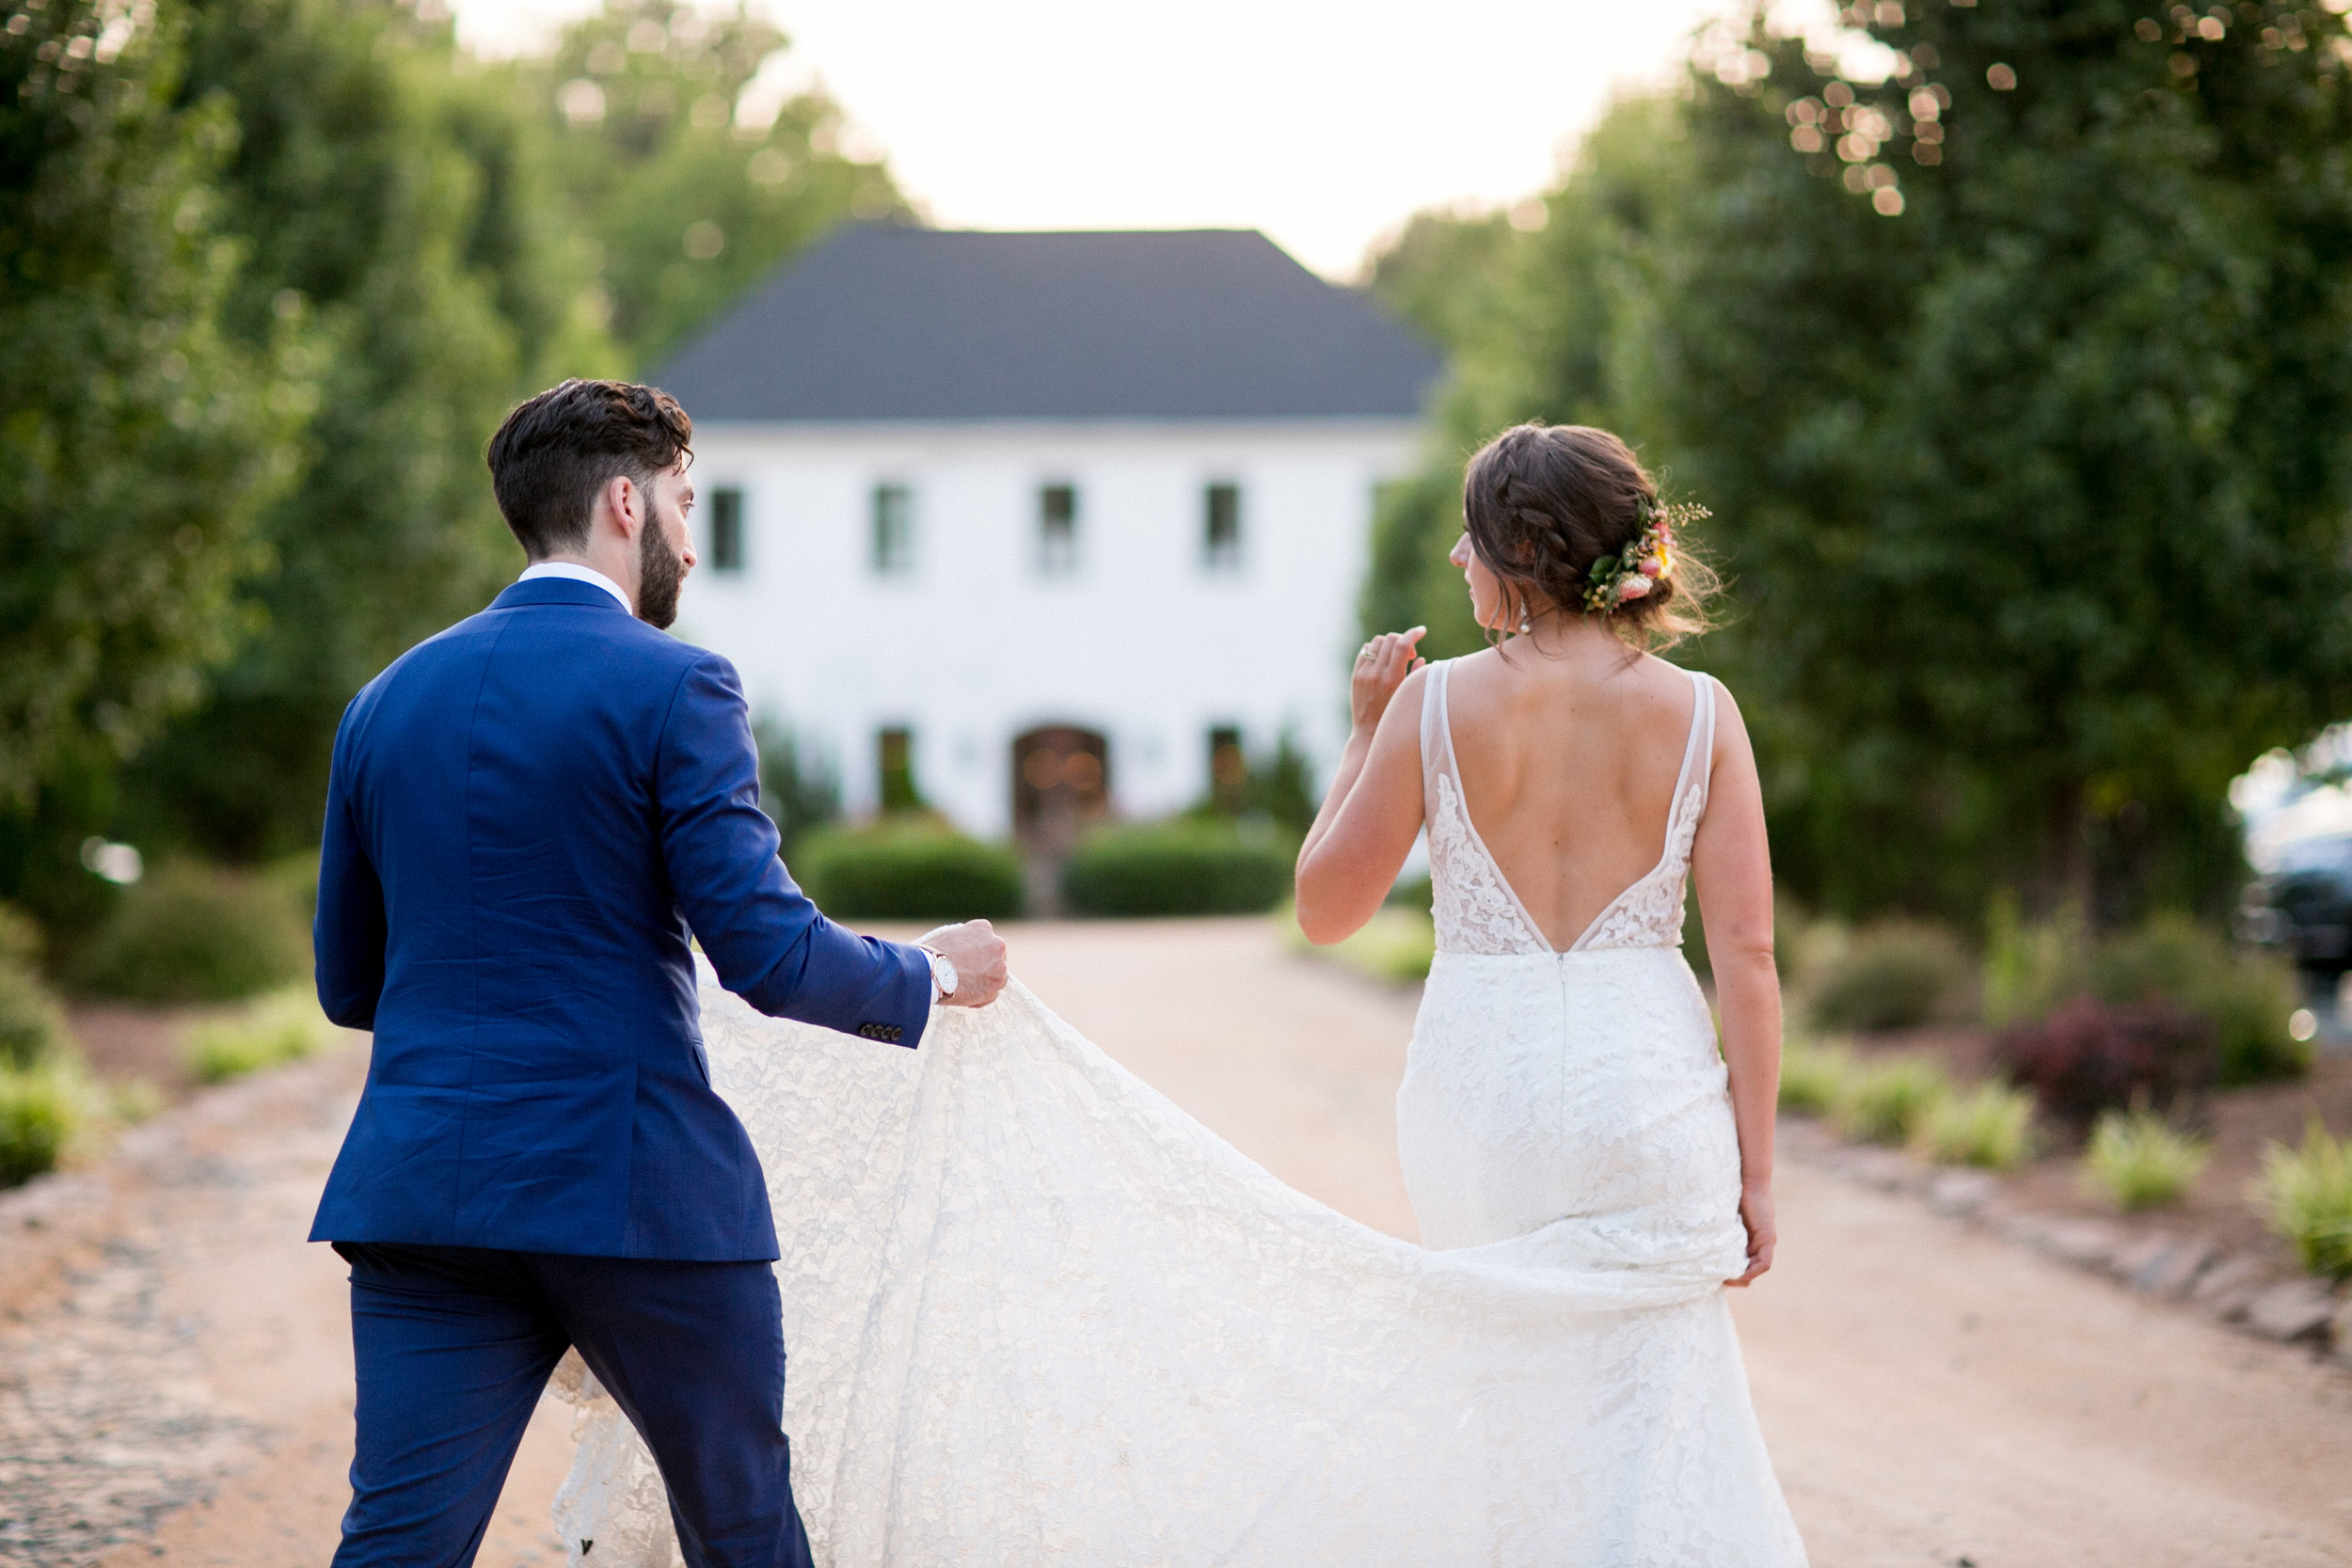 64-2019-Wedding-select-web.jpg